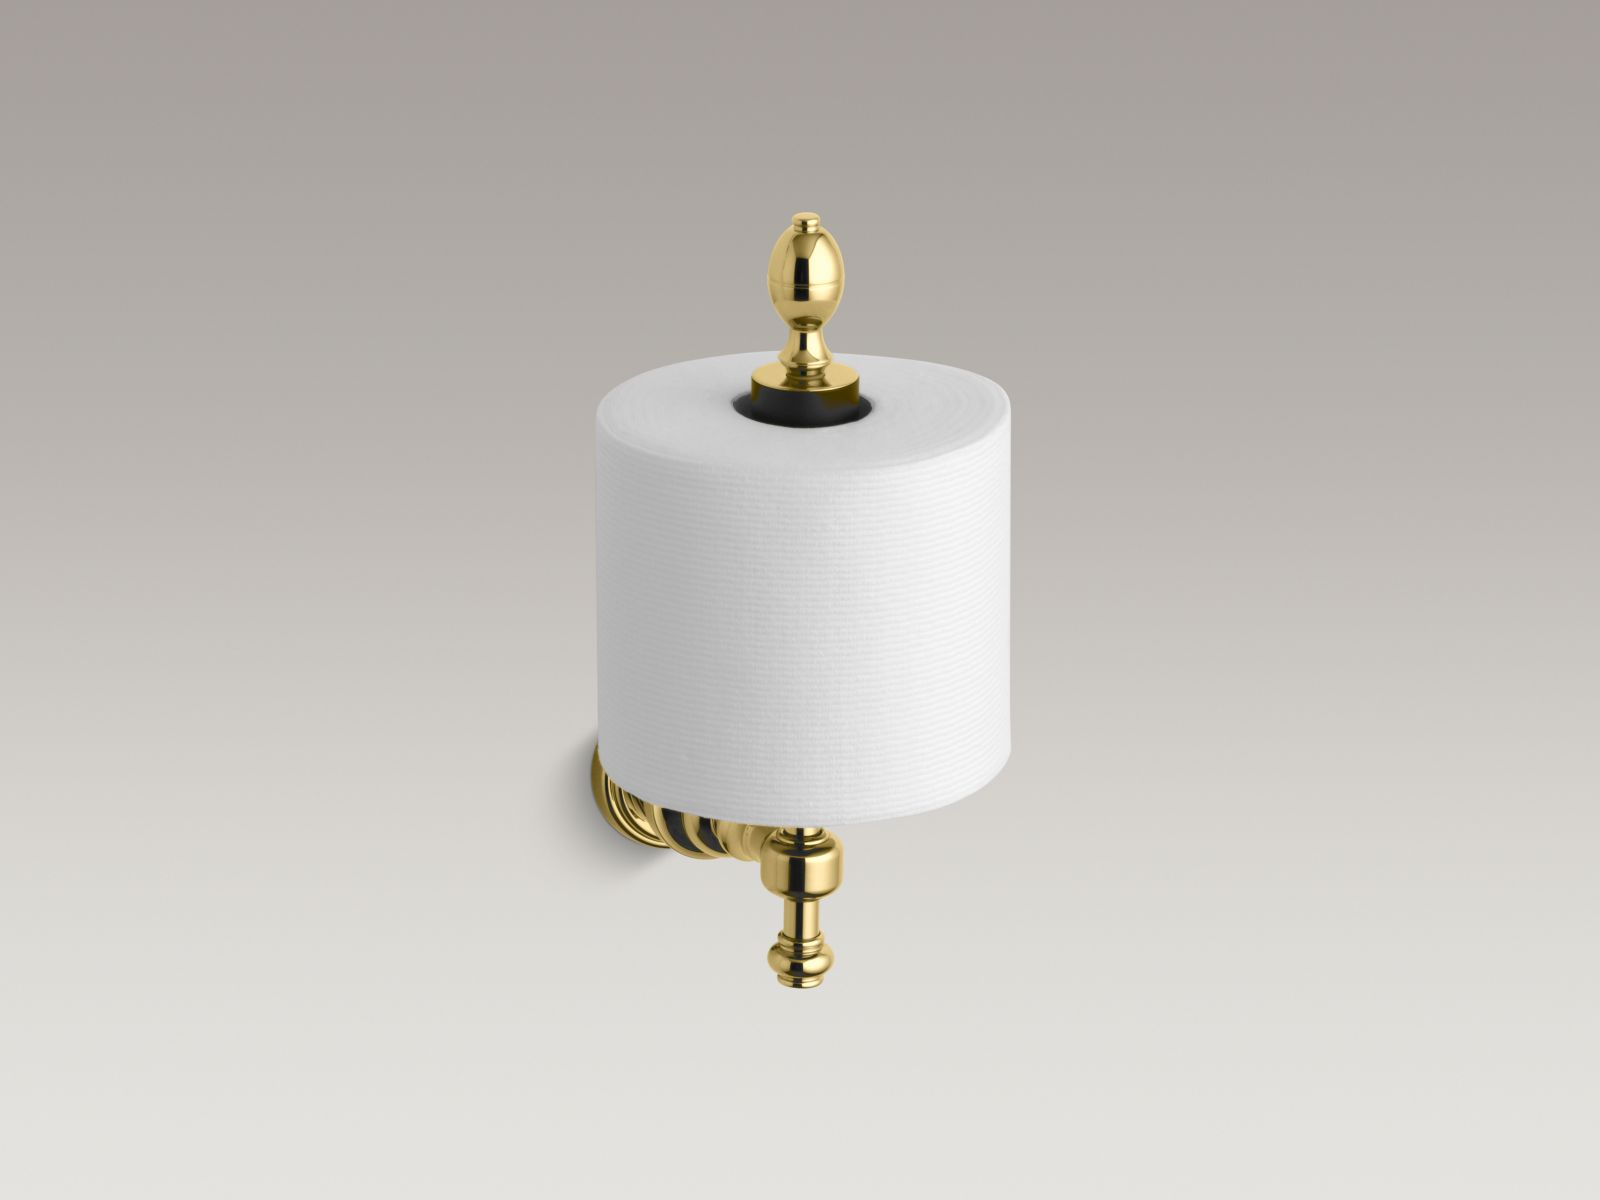 Kohler K-6818-PB IV Georges Brass Vertical Toilet Tissue Holder Vibrant Polished Brass